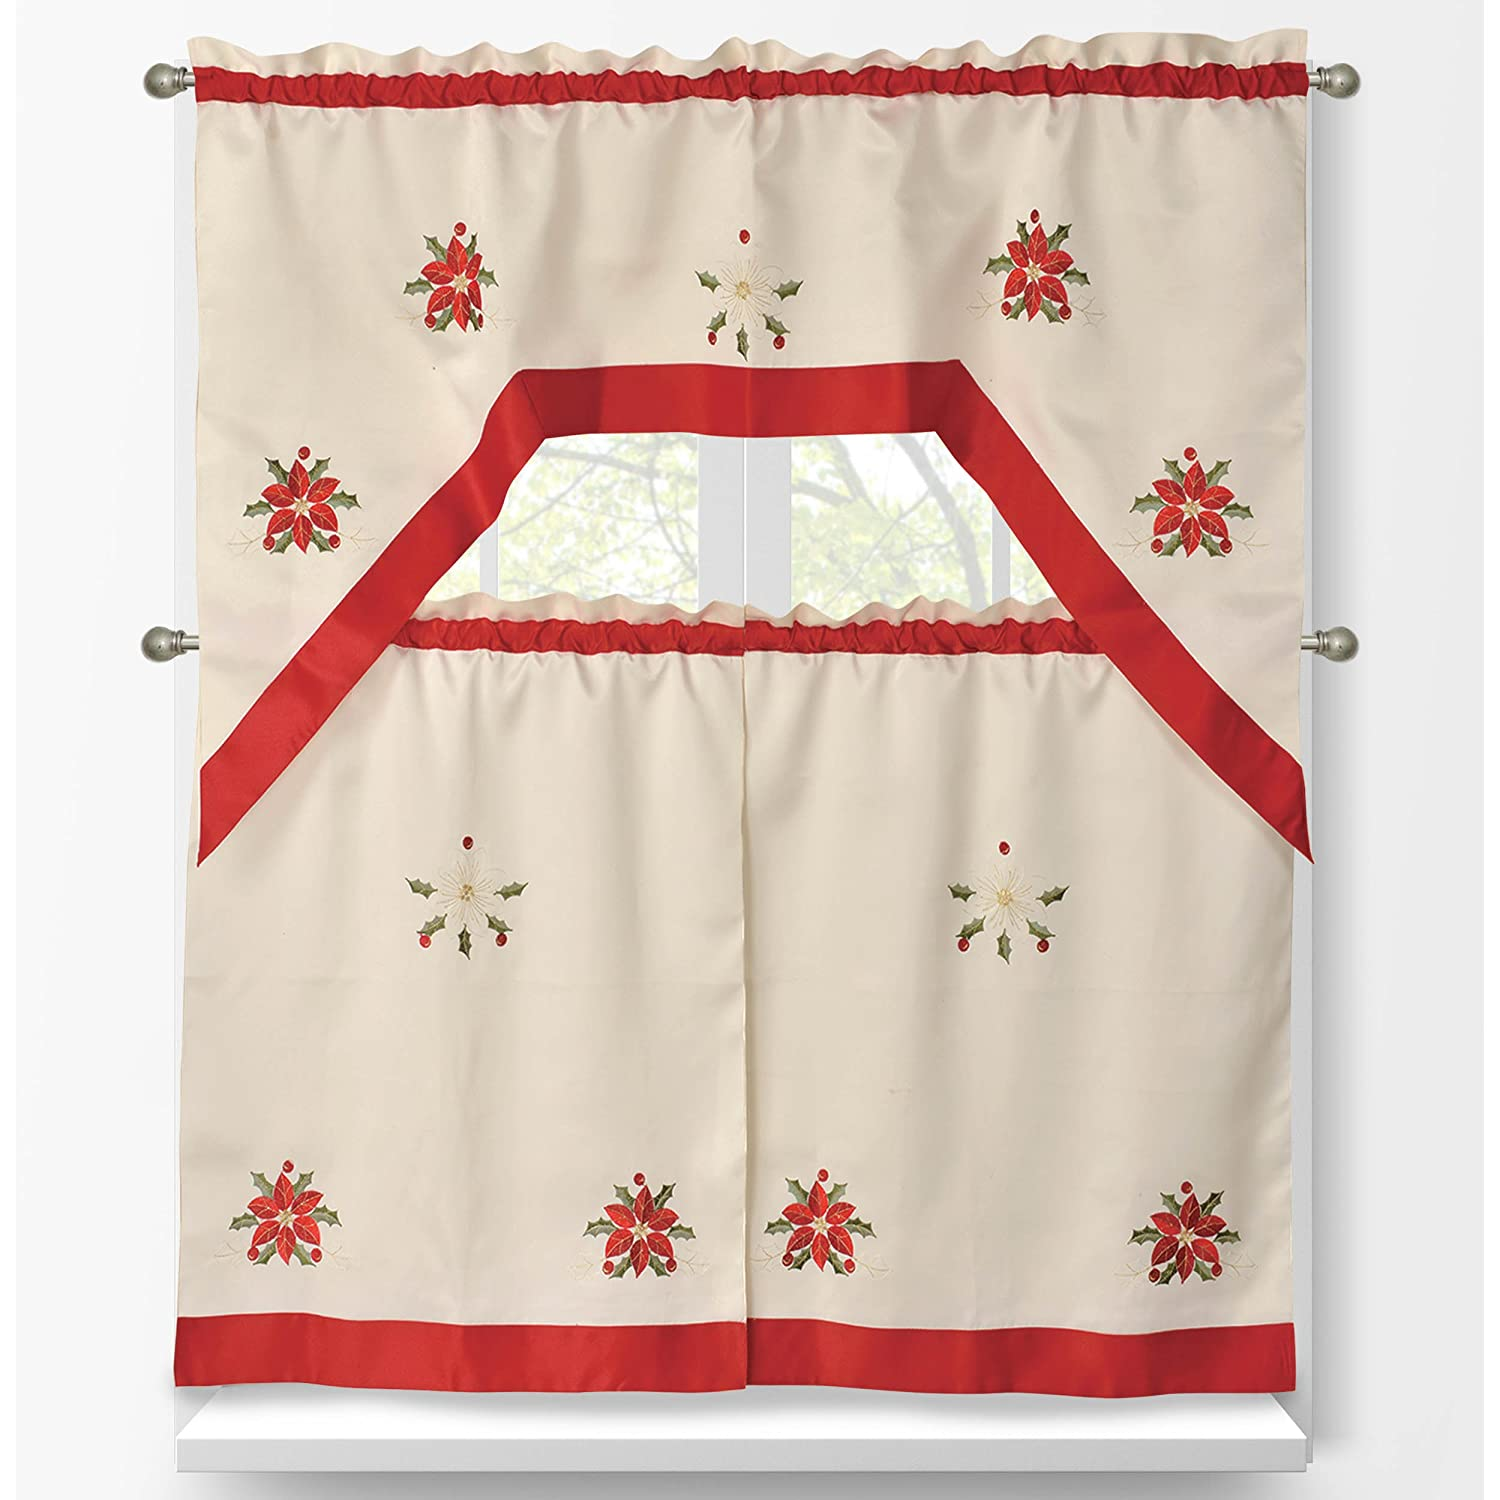 Poinsettia Window Curtains